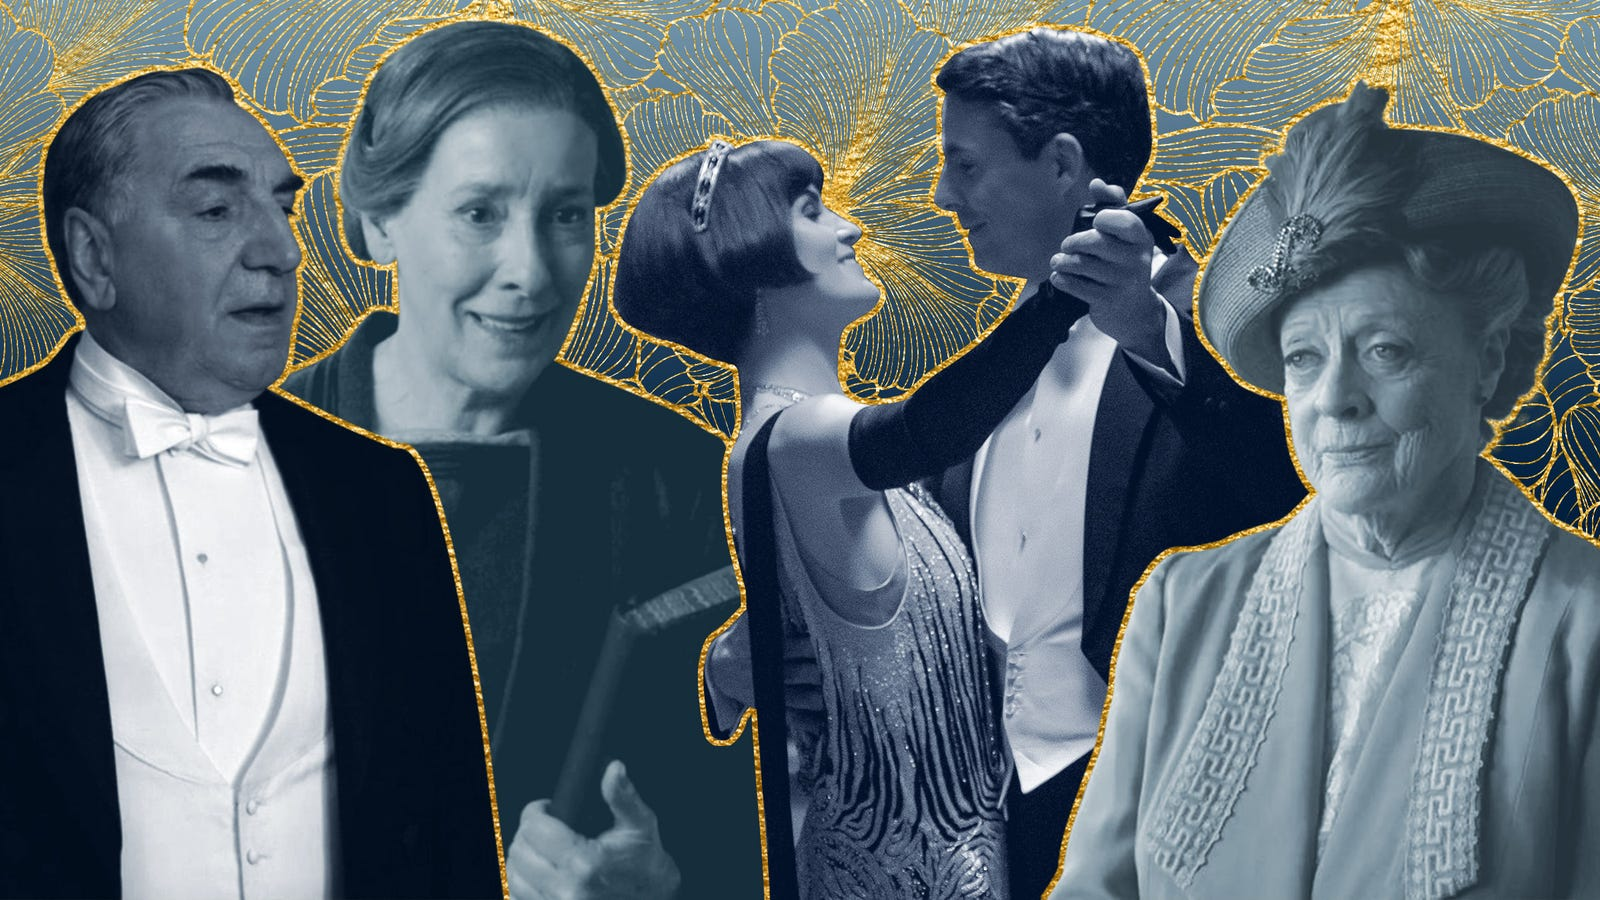 """What is a weekend?"": A catch-up guide to Downton Abbey's cast and characters"